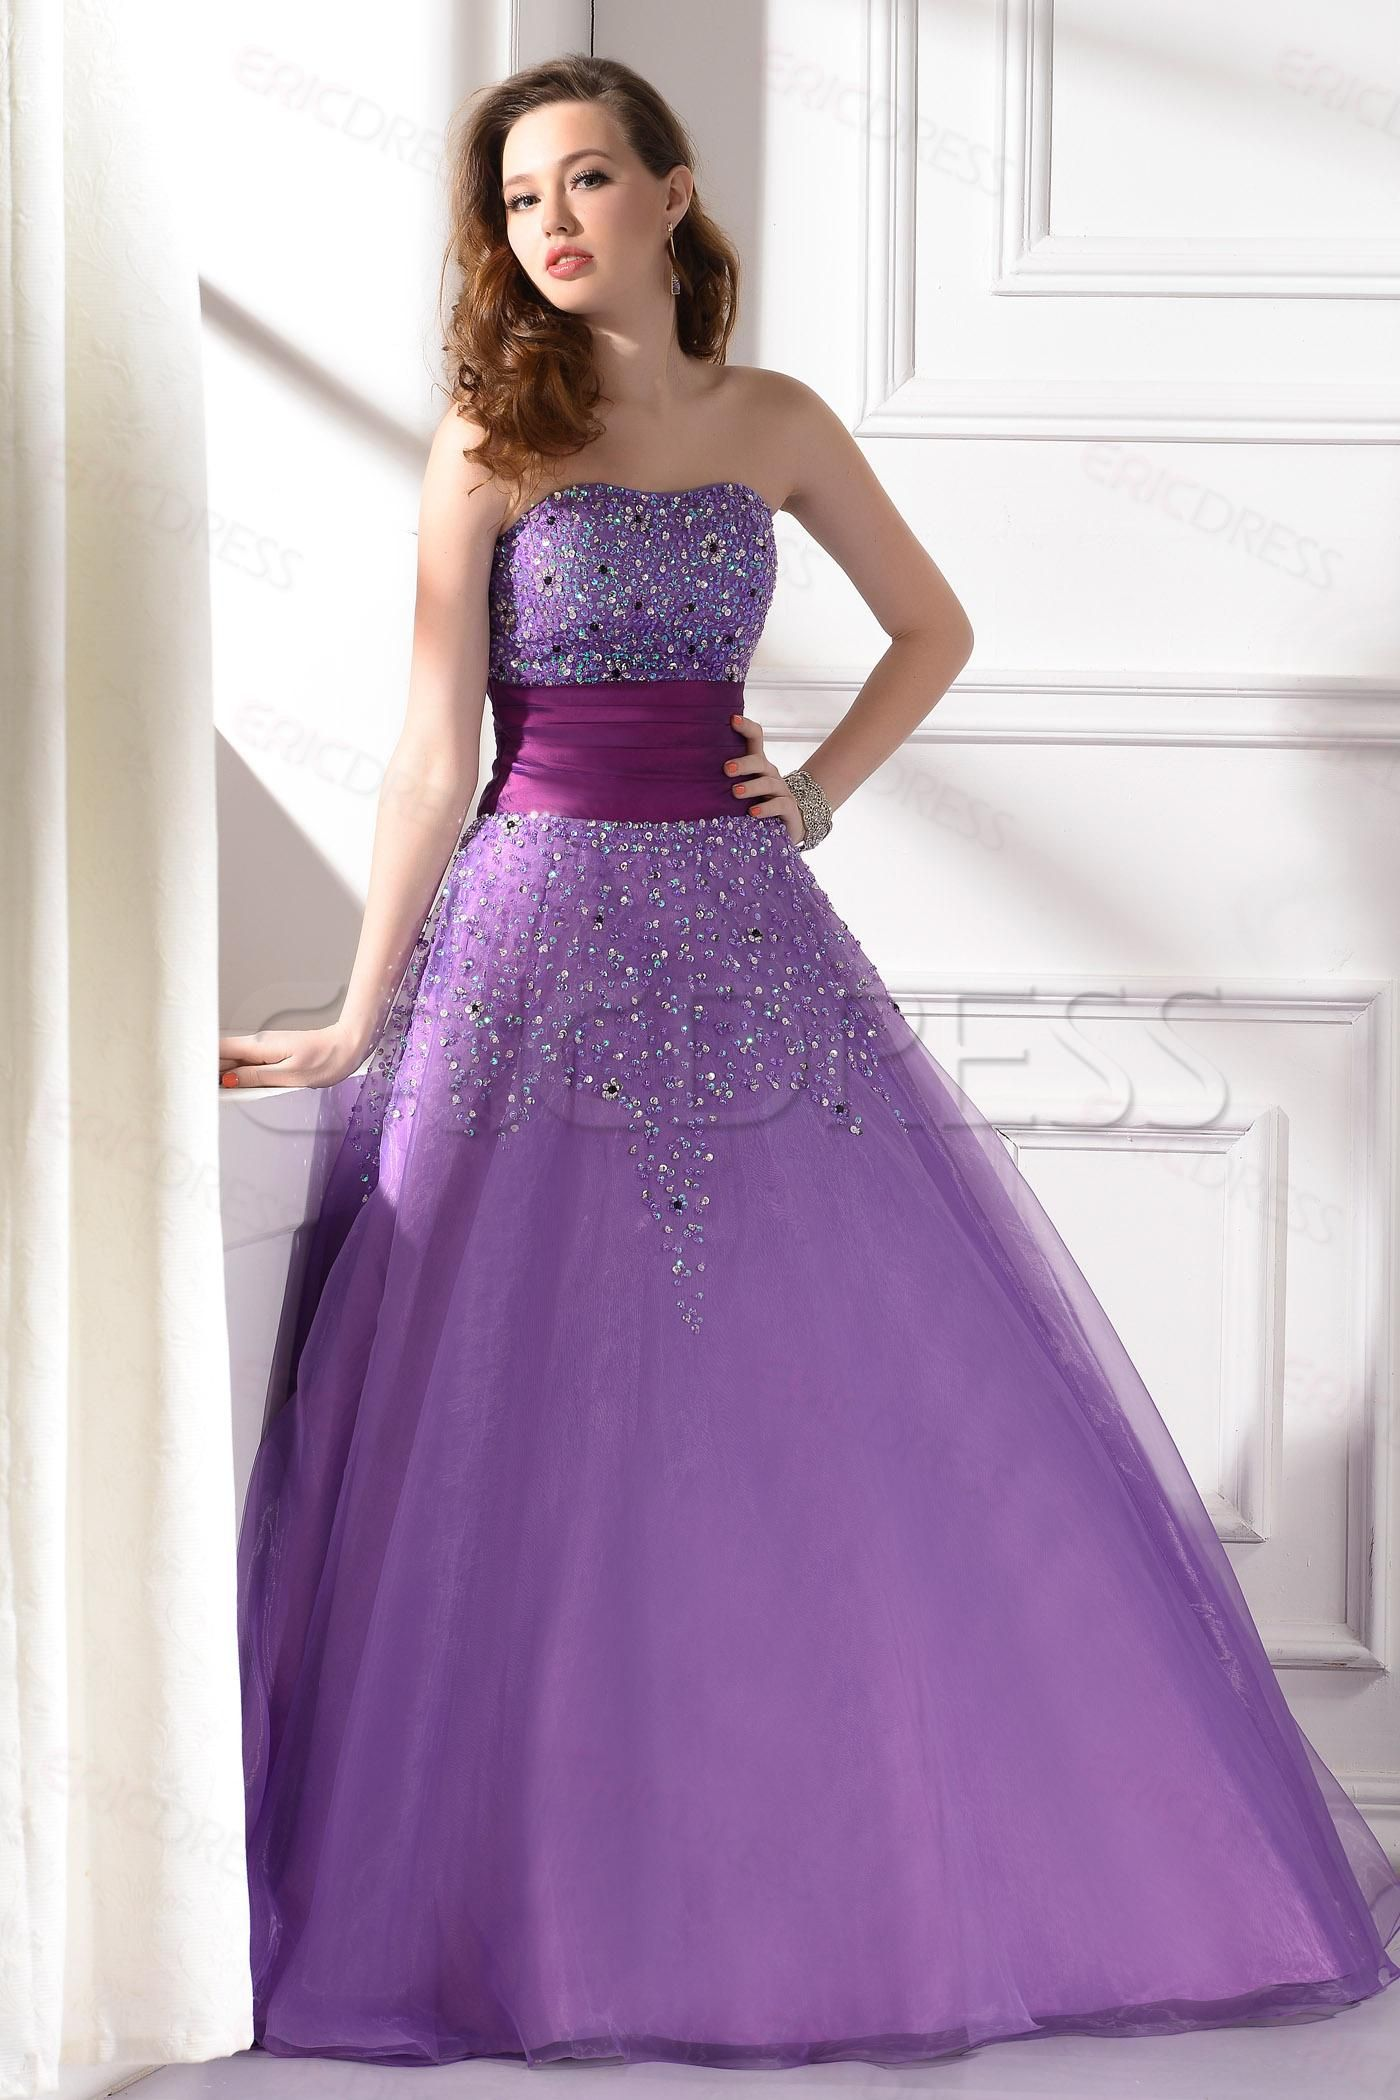 Gorgeous Strapless Floor-Length Paillette Prom/Evening Dress Elegant ...